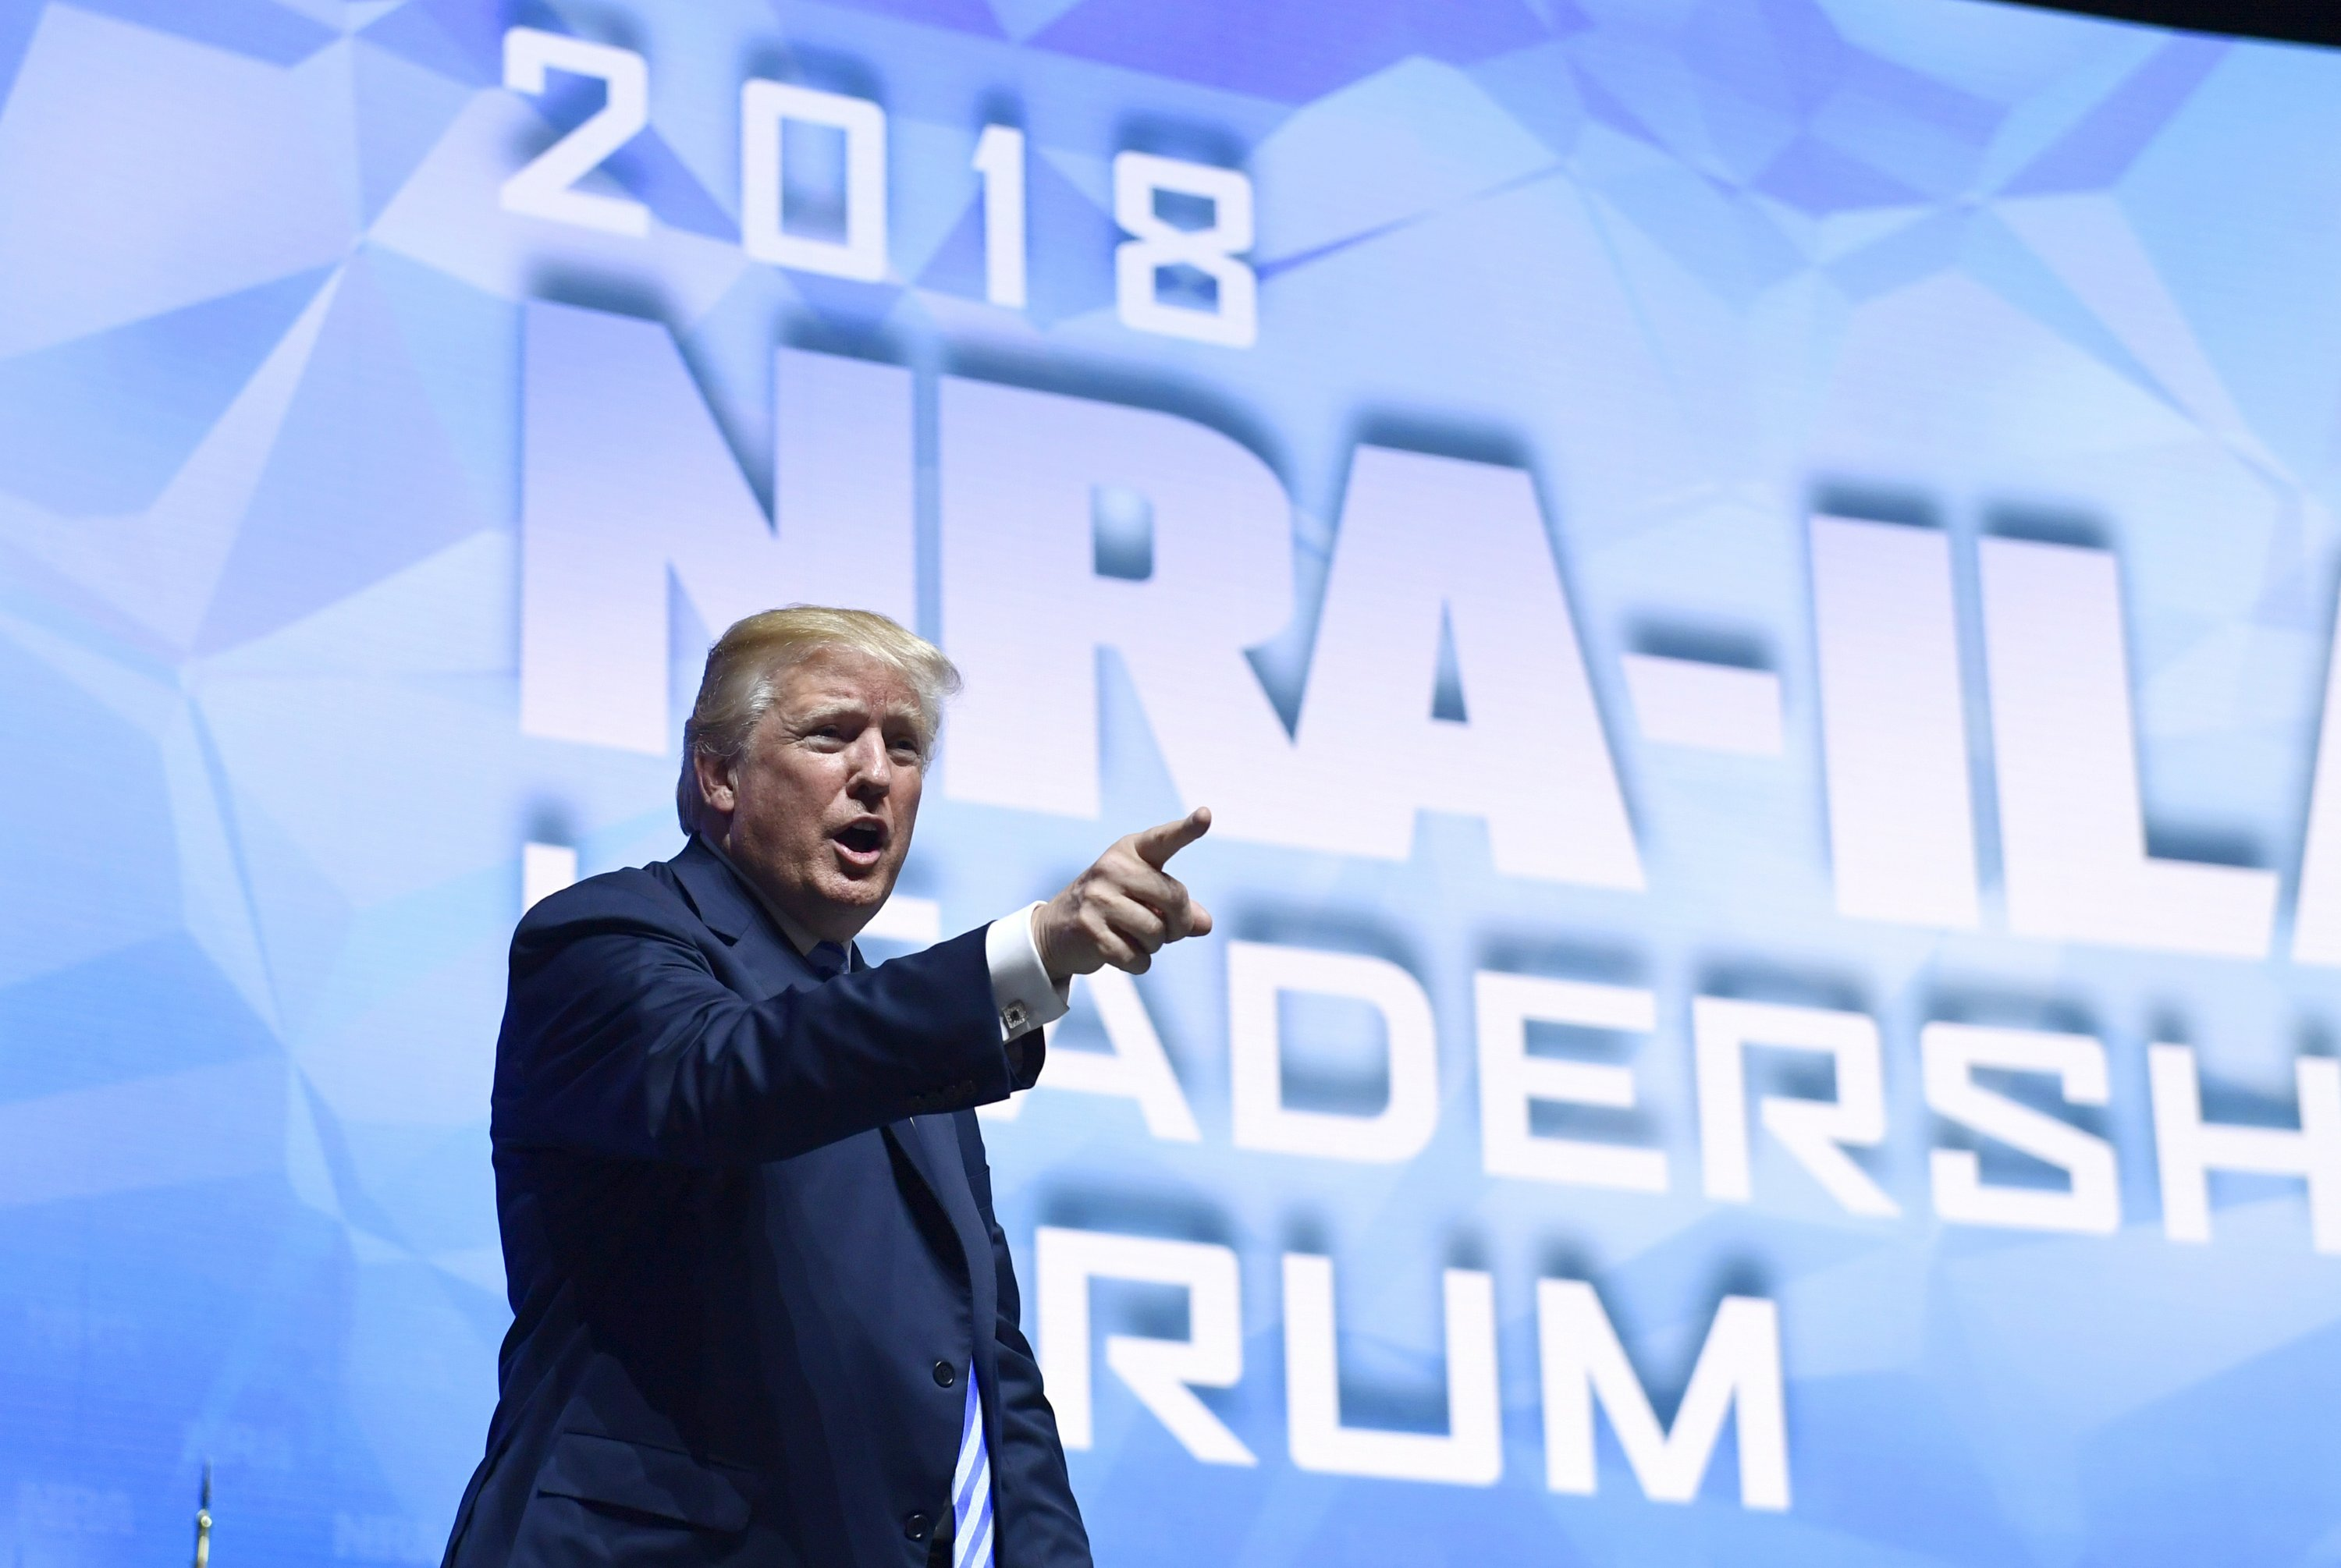 Trump salutes NRA, says elect Republicans to save gun rights